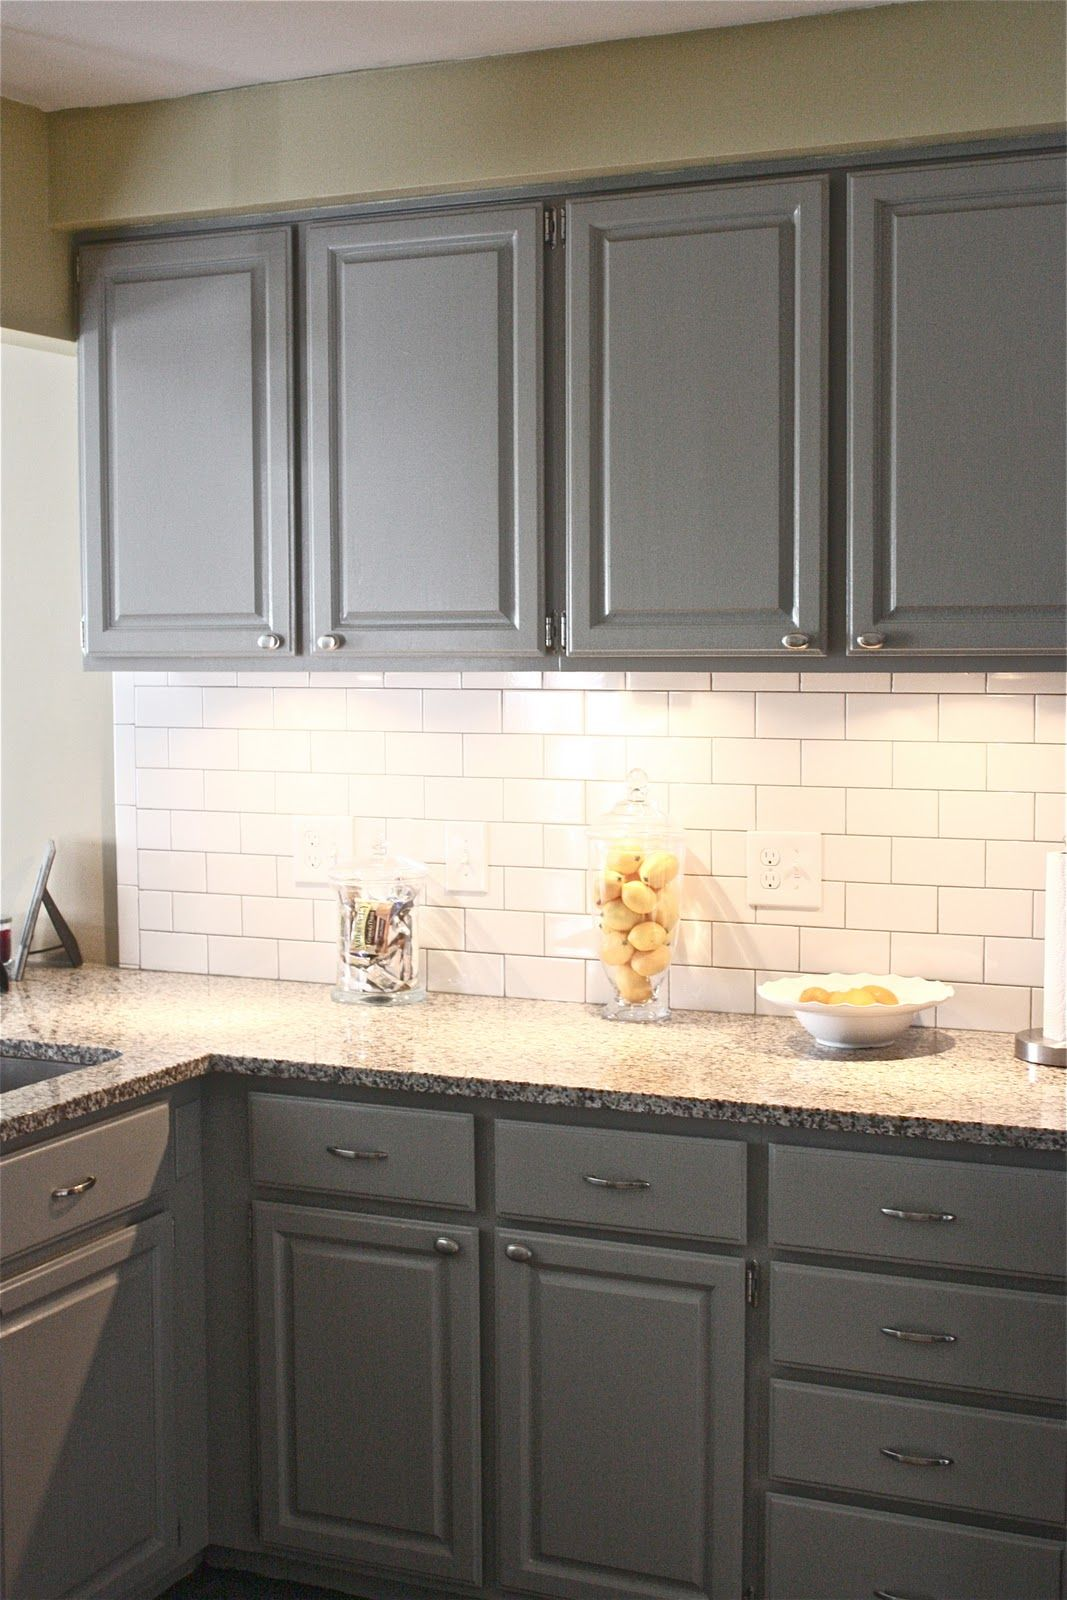 The Yellow Cape Cod Client Project Kitchen Before And After Backsplash For White Cabinets Kitchen Design Kitchen Remodel